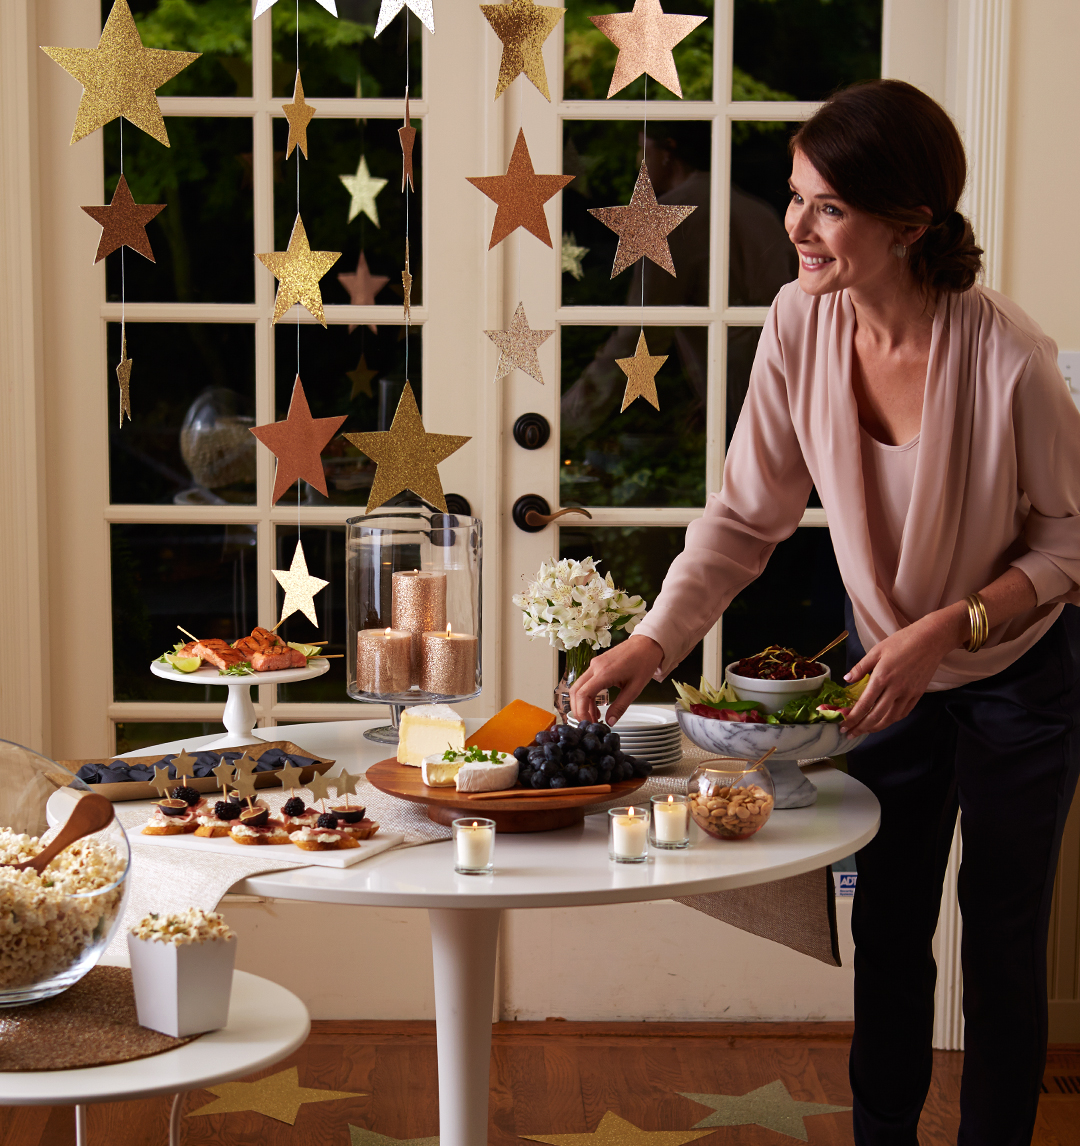 oscar party decorations with food on table and hanging stars